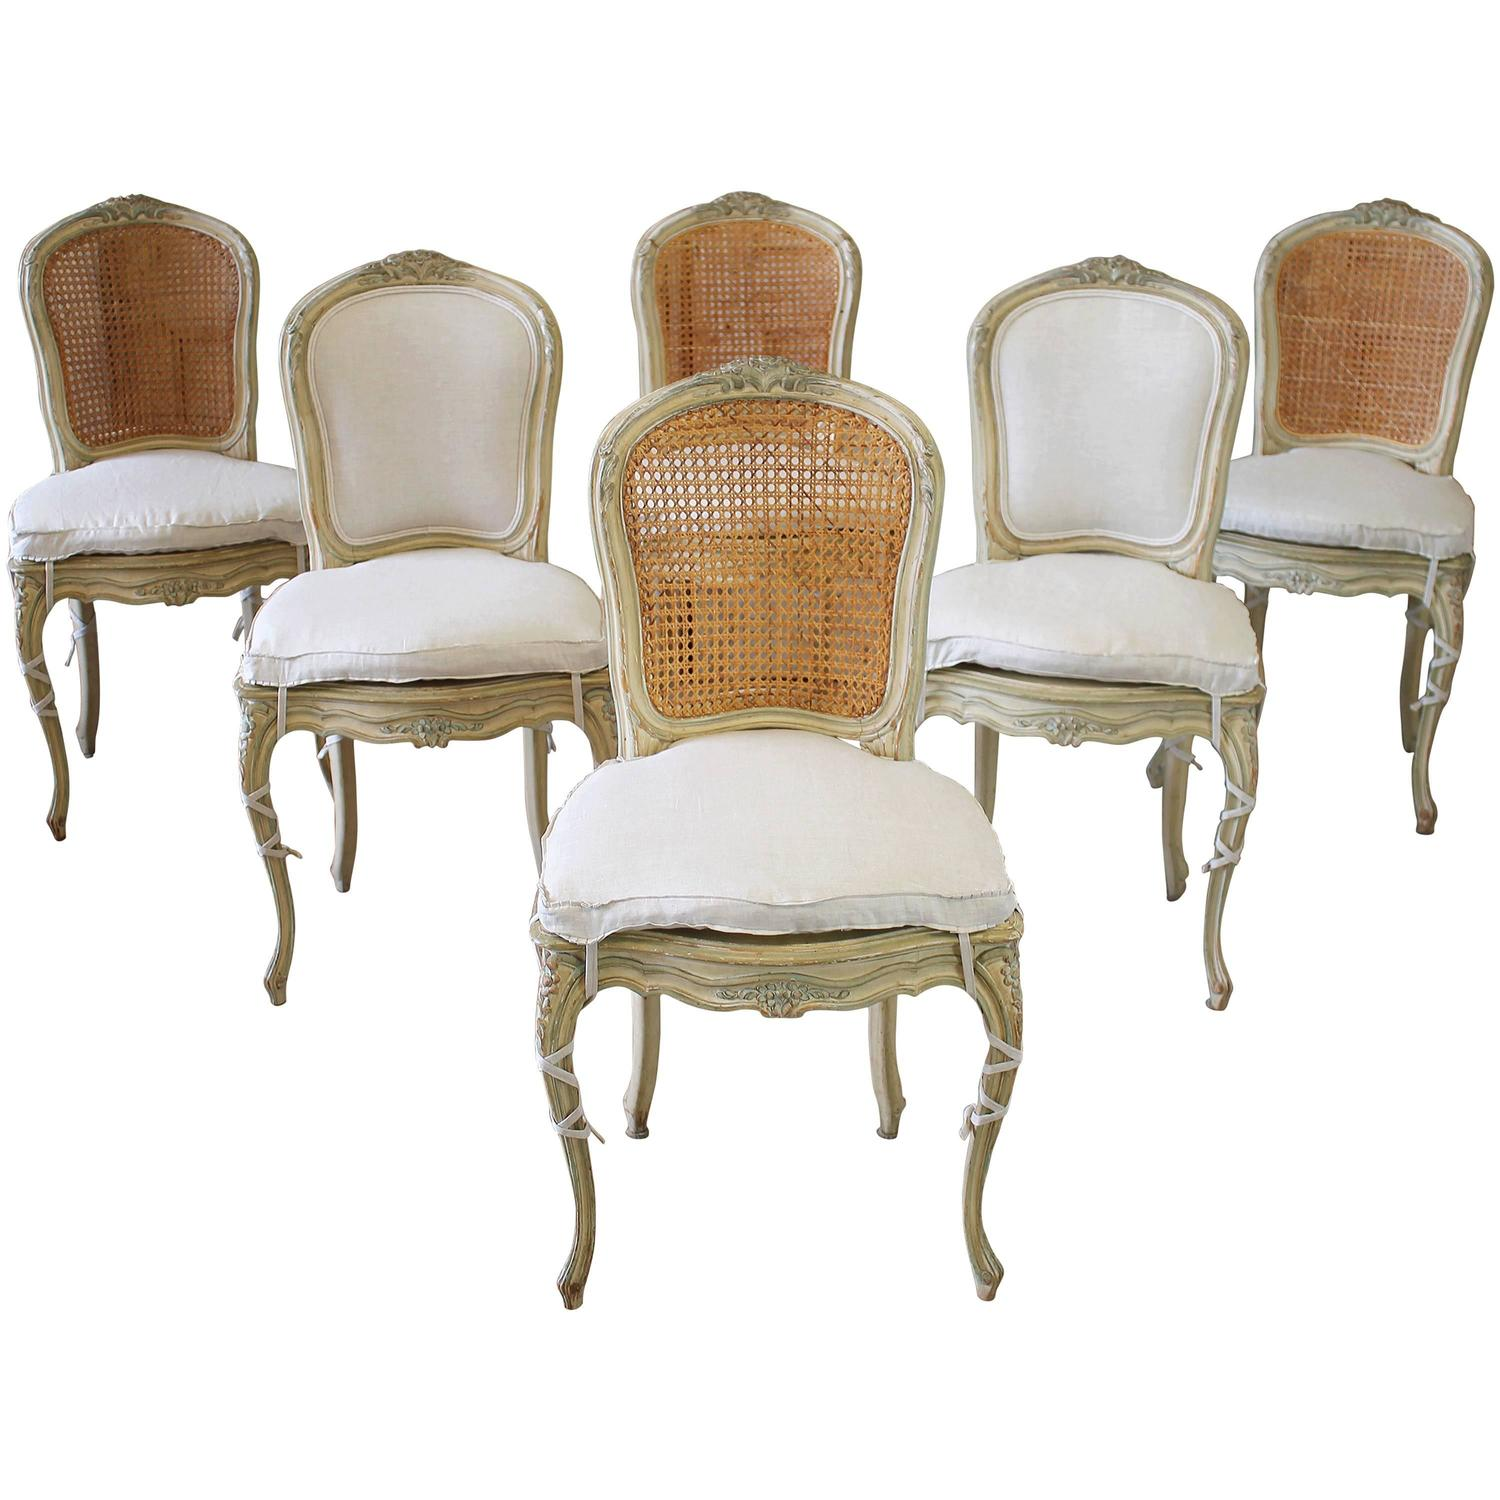 Cane Dining Chairs 19th Century Louis Xv Antique French Cane Dining Chairs